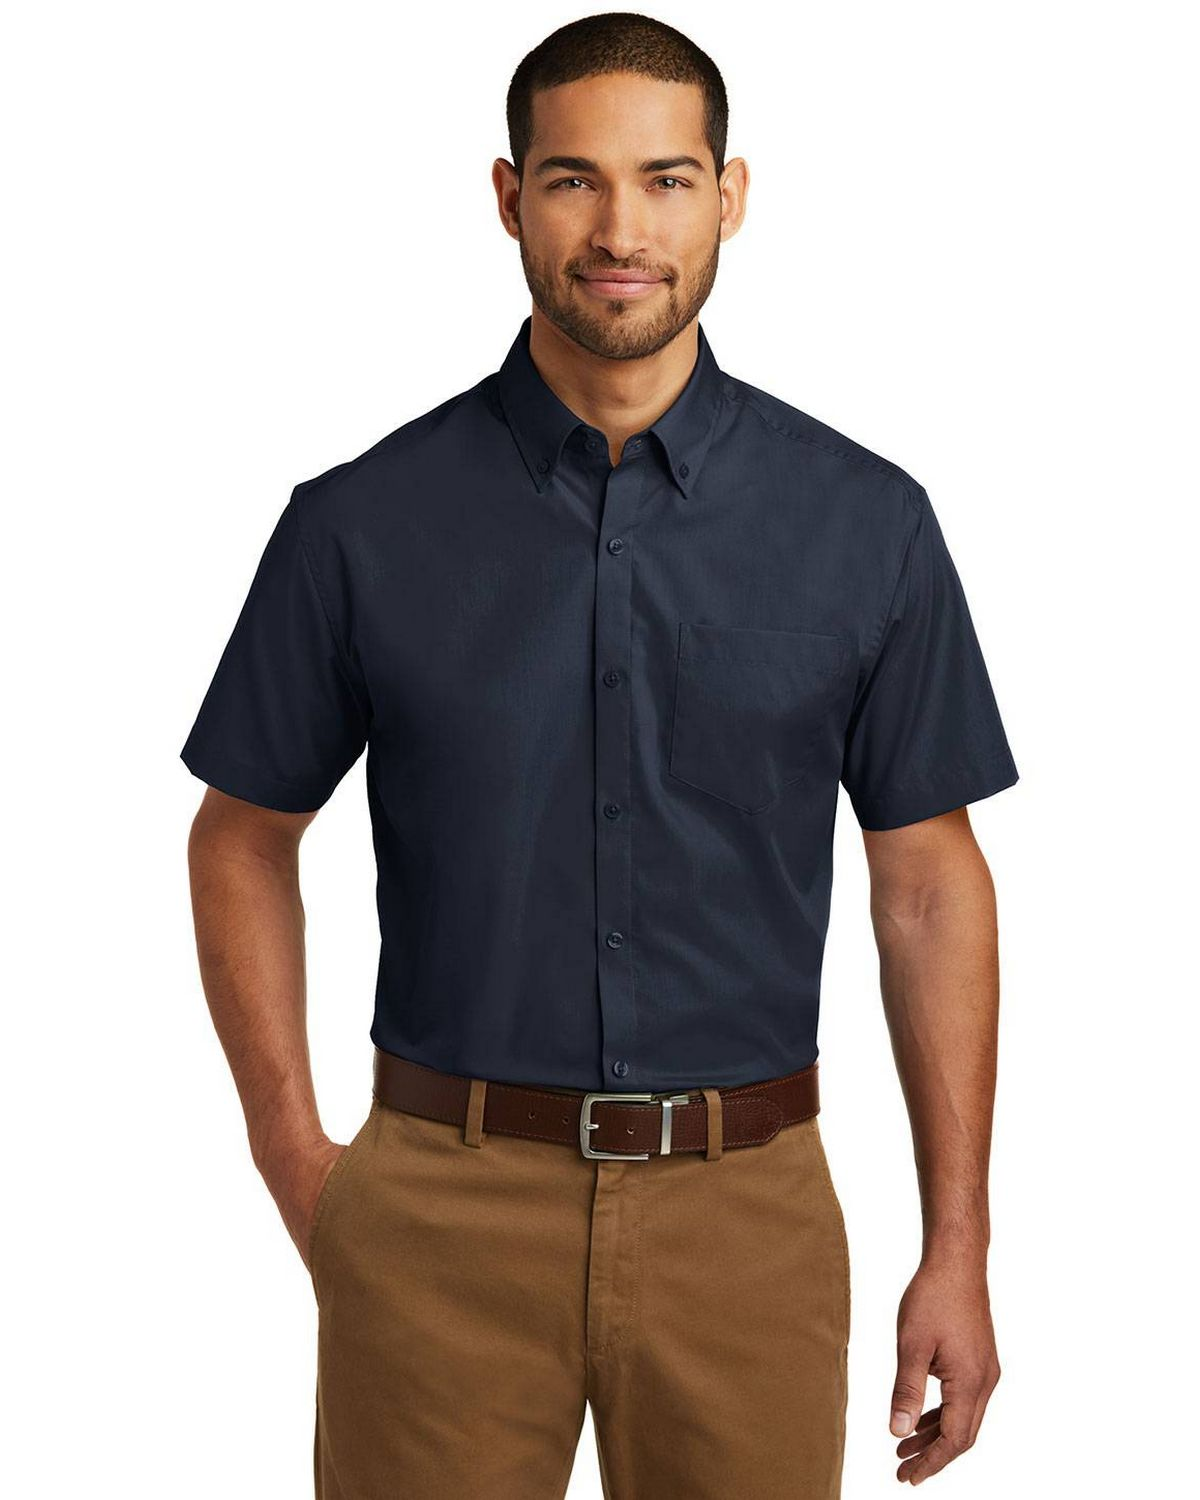 Port Authority W101 Mens Short Sleeve Carefree Poplin Shirt